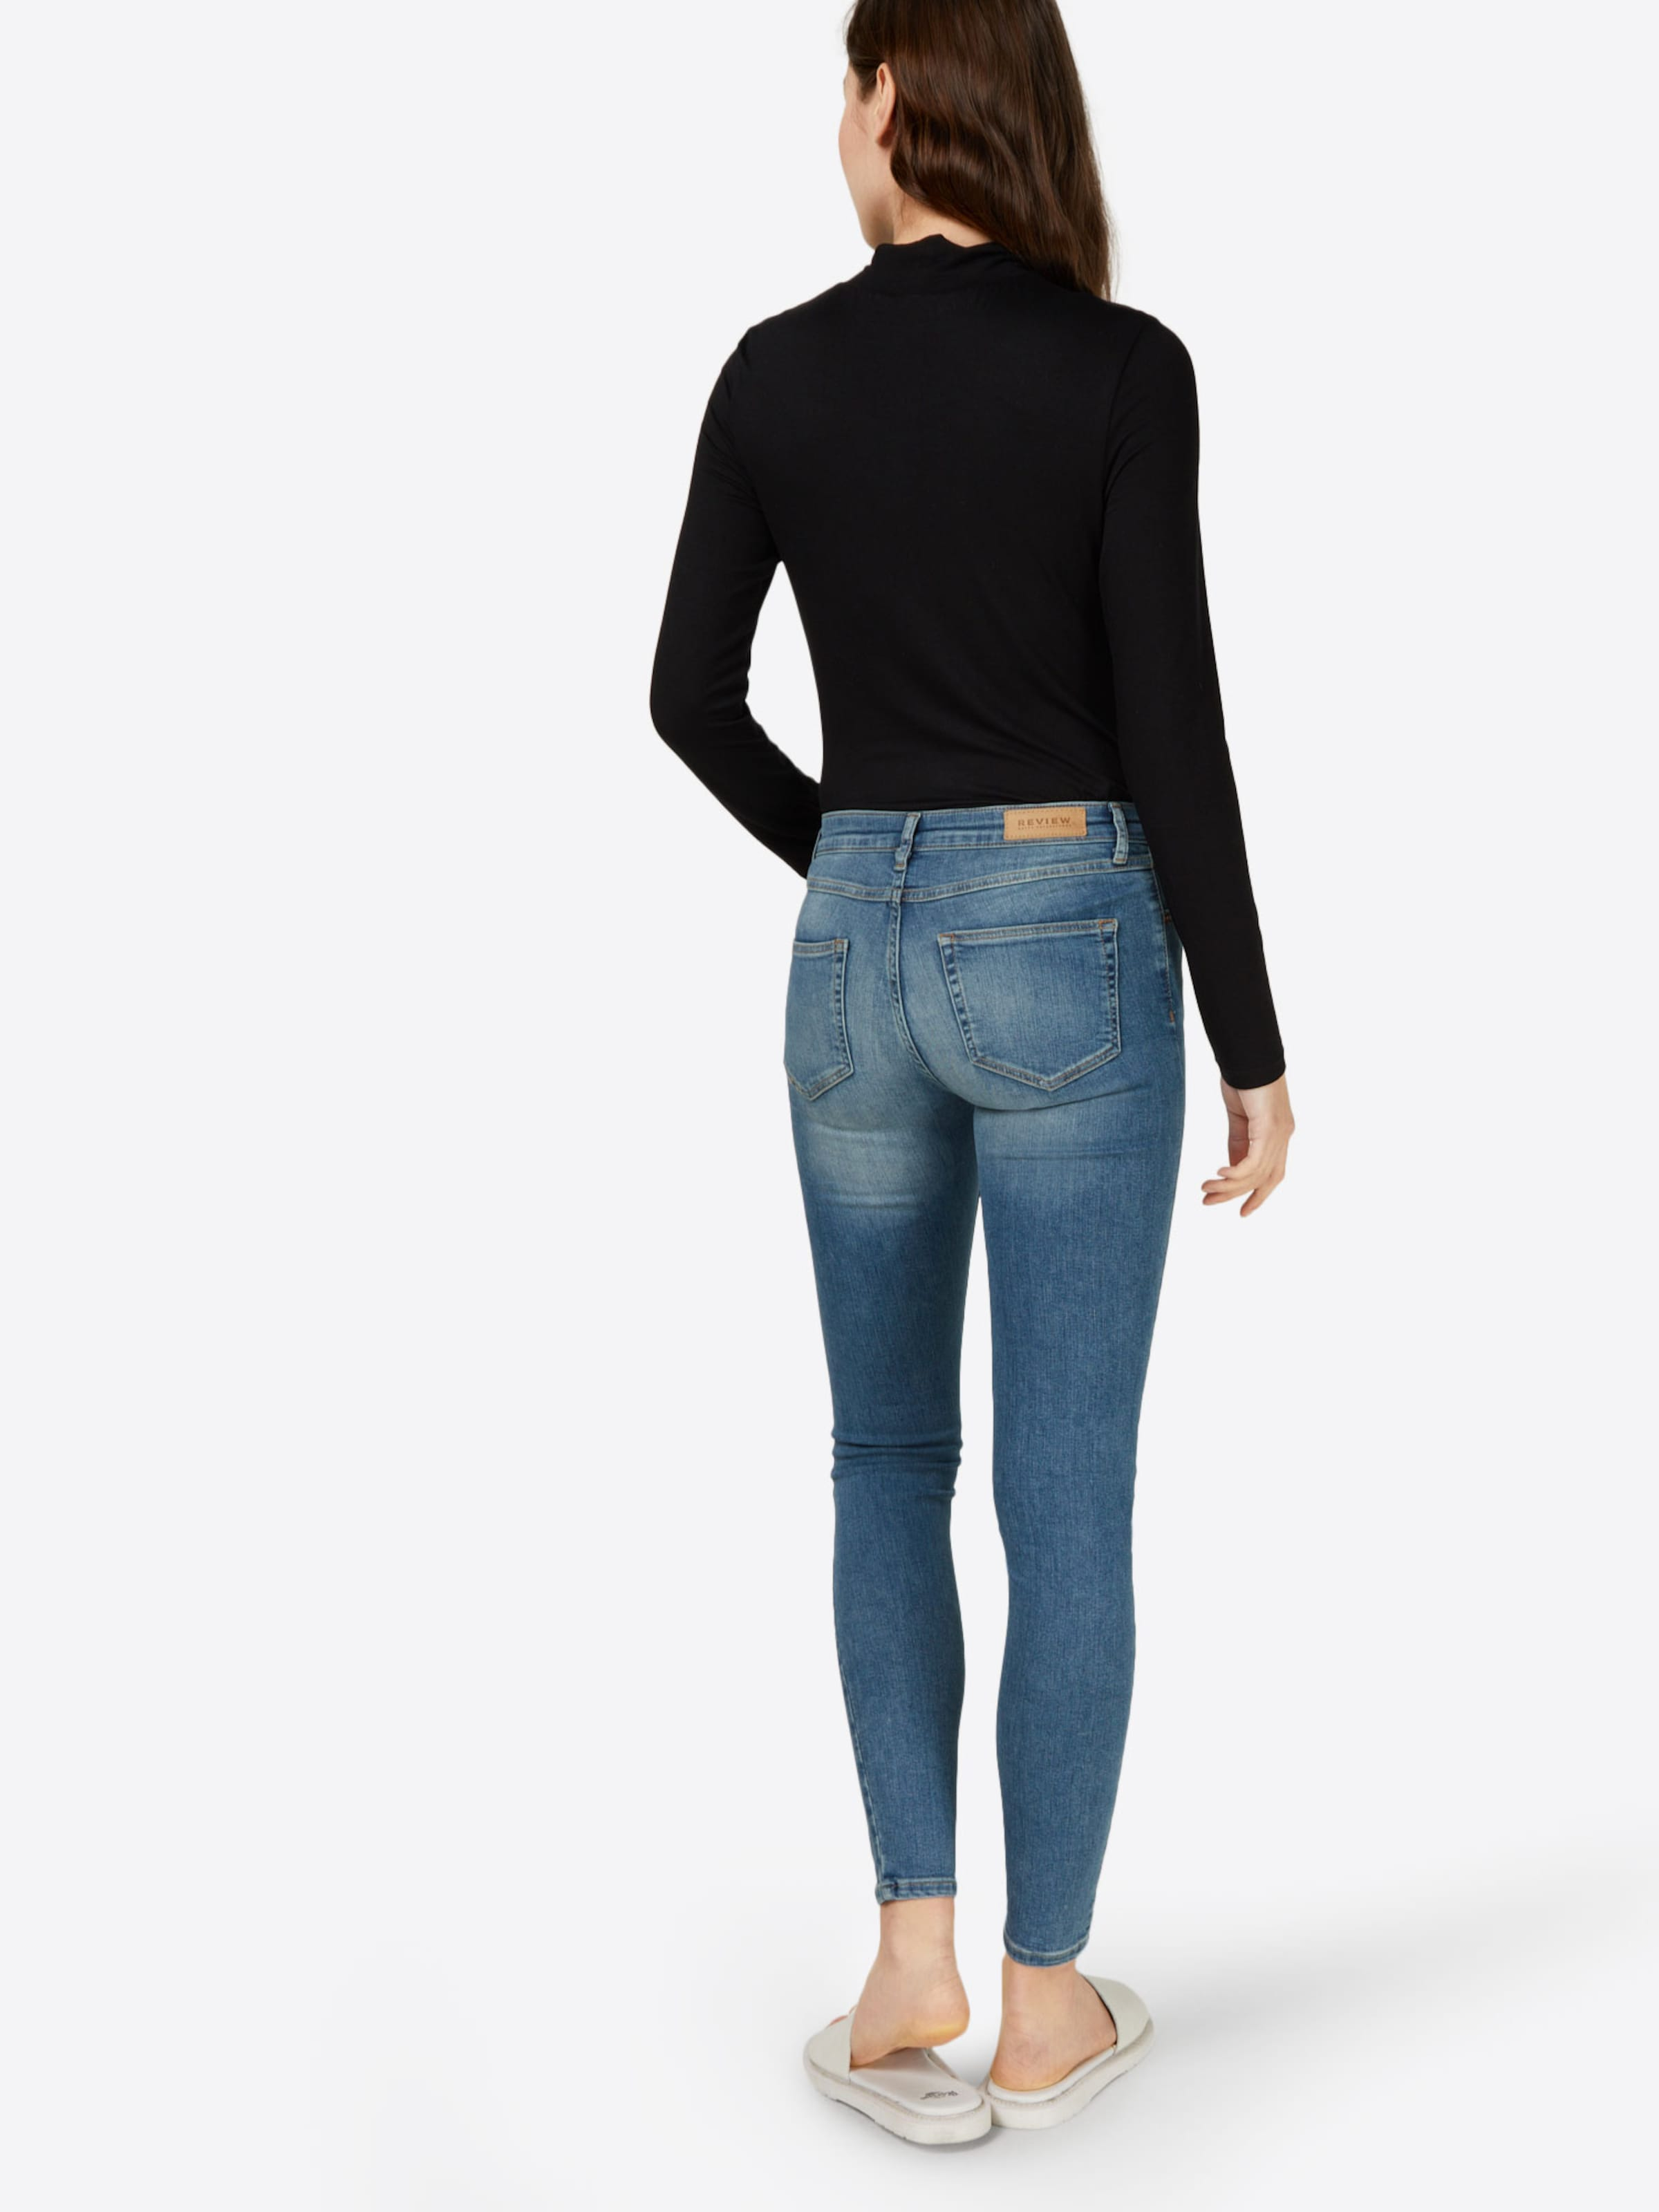 Jeans Review In Review Blauw Jeans Review In In Review Blauw Jeans Blauw 8nwqSAIXw